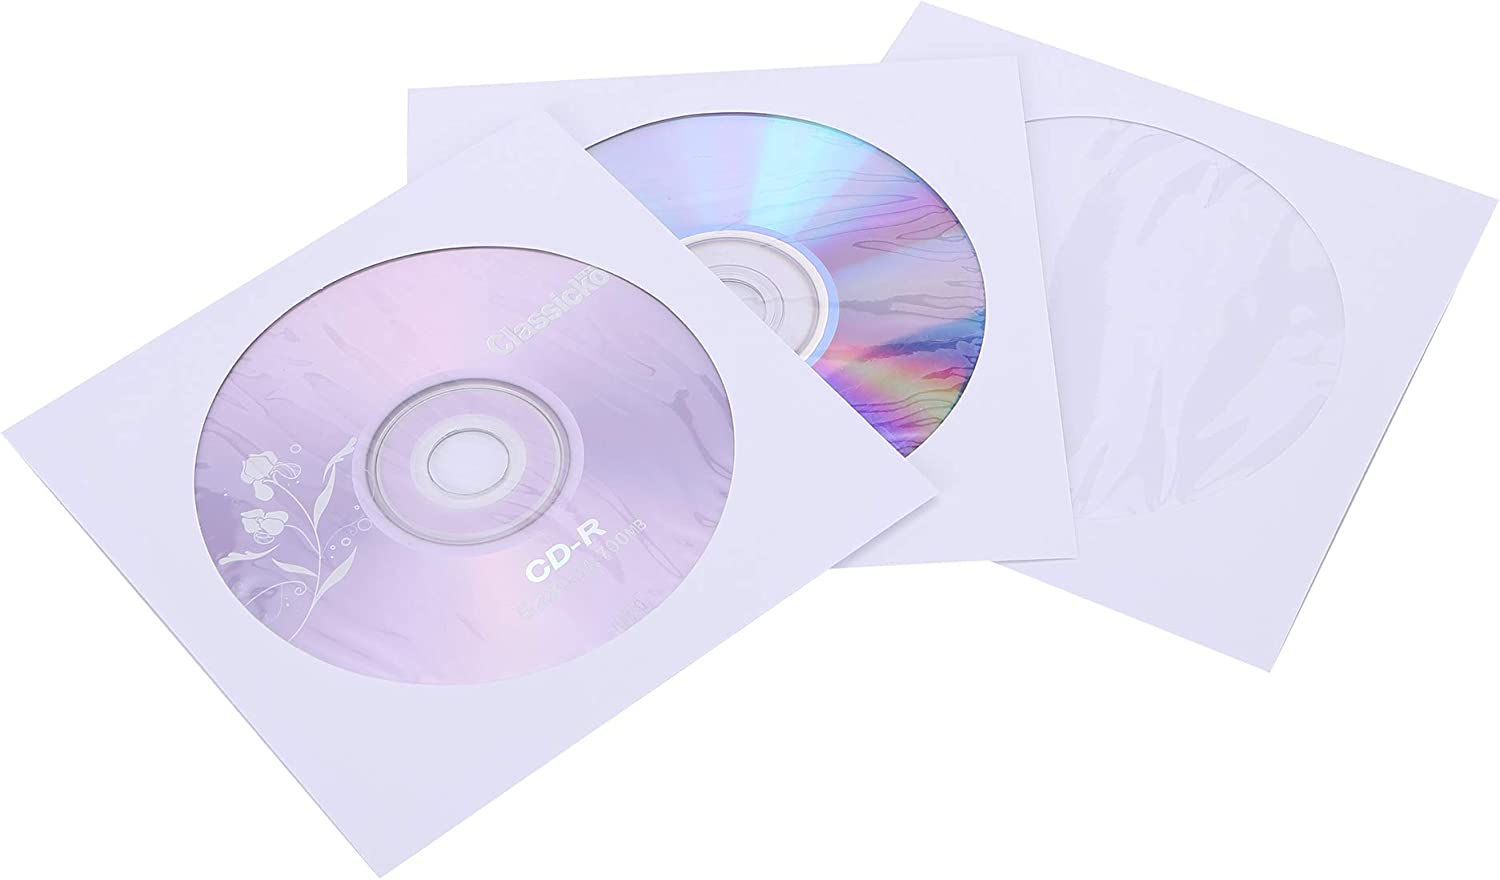 PacificMailer Paper CD DVD Disc Sleeves Envelope with Window Cut Out and Flap, Premium Thick [120g Heavy Weight, Pack of 100]